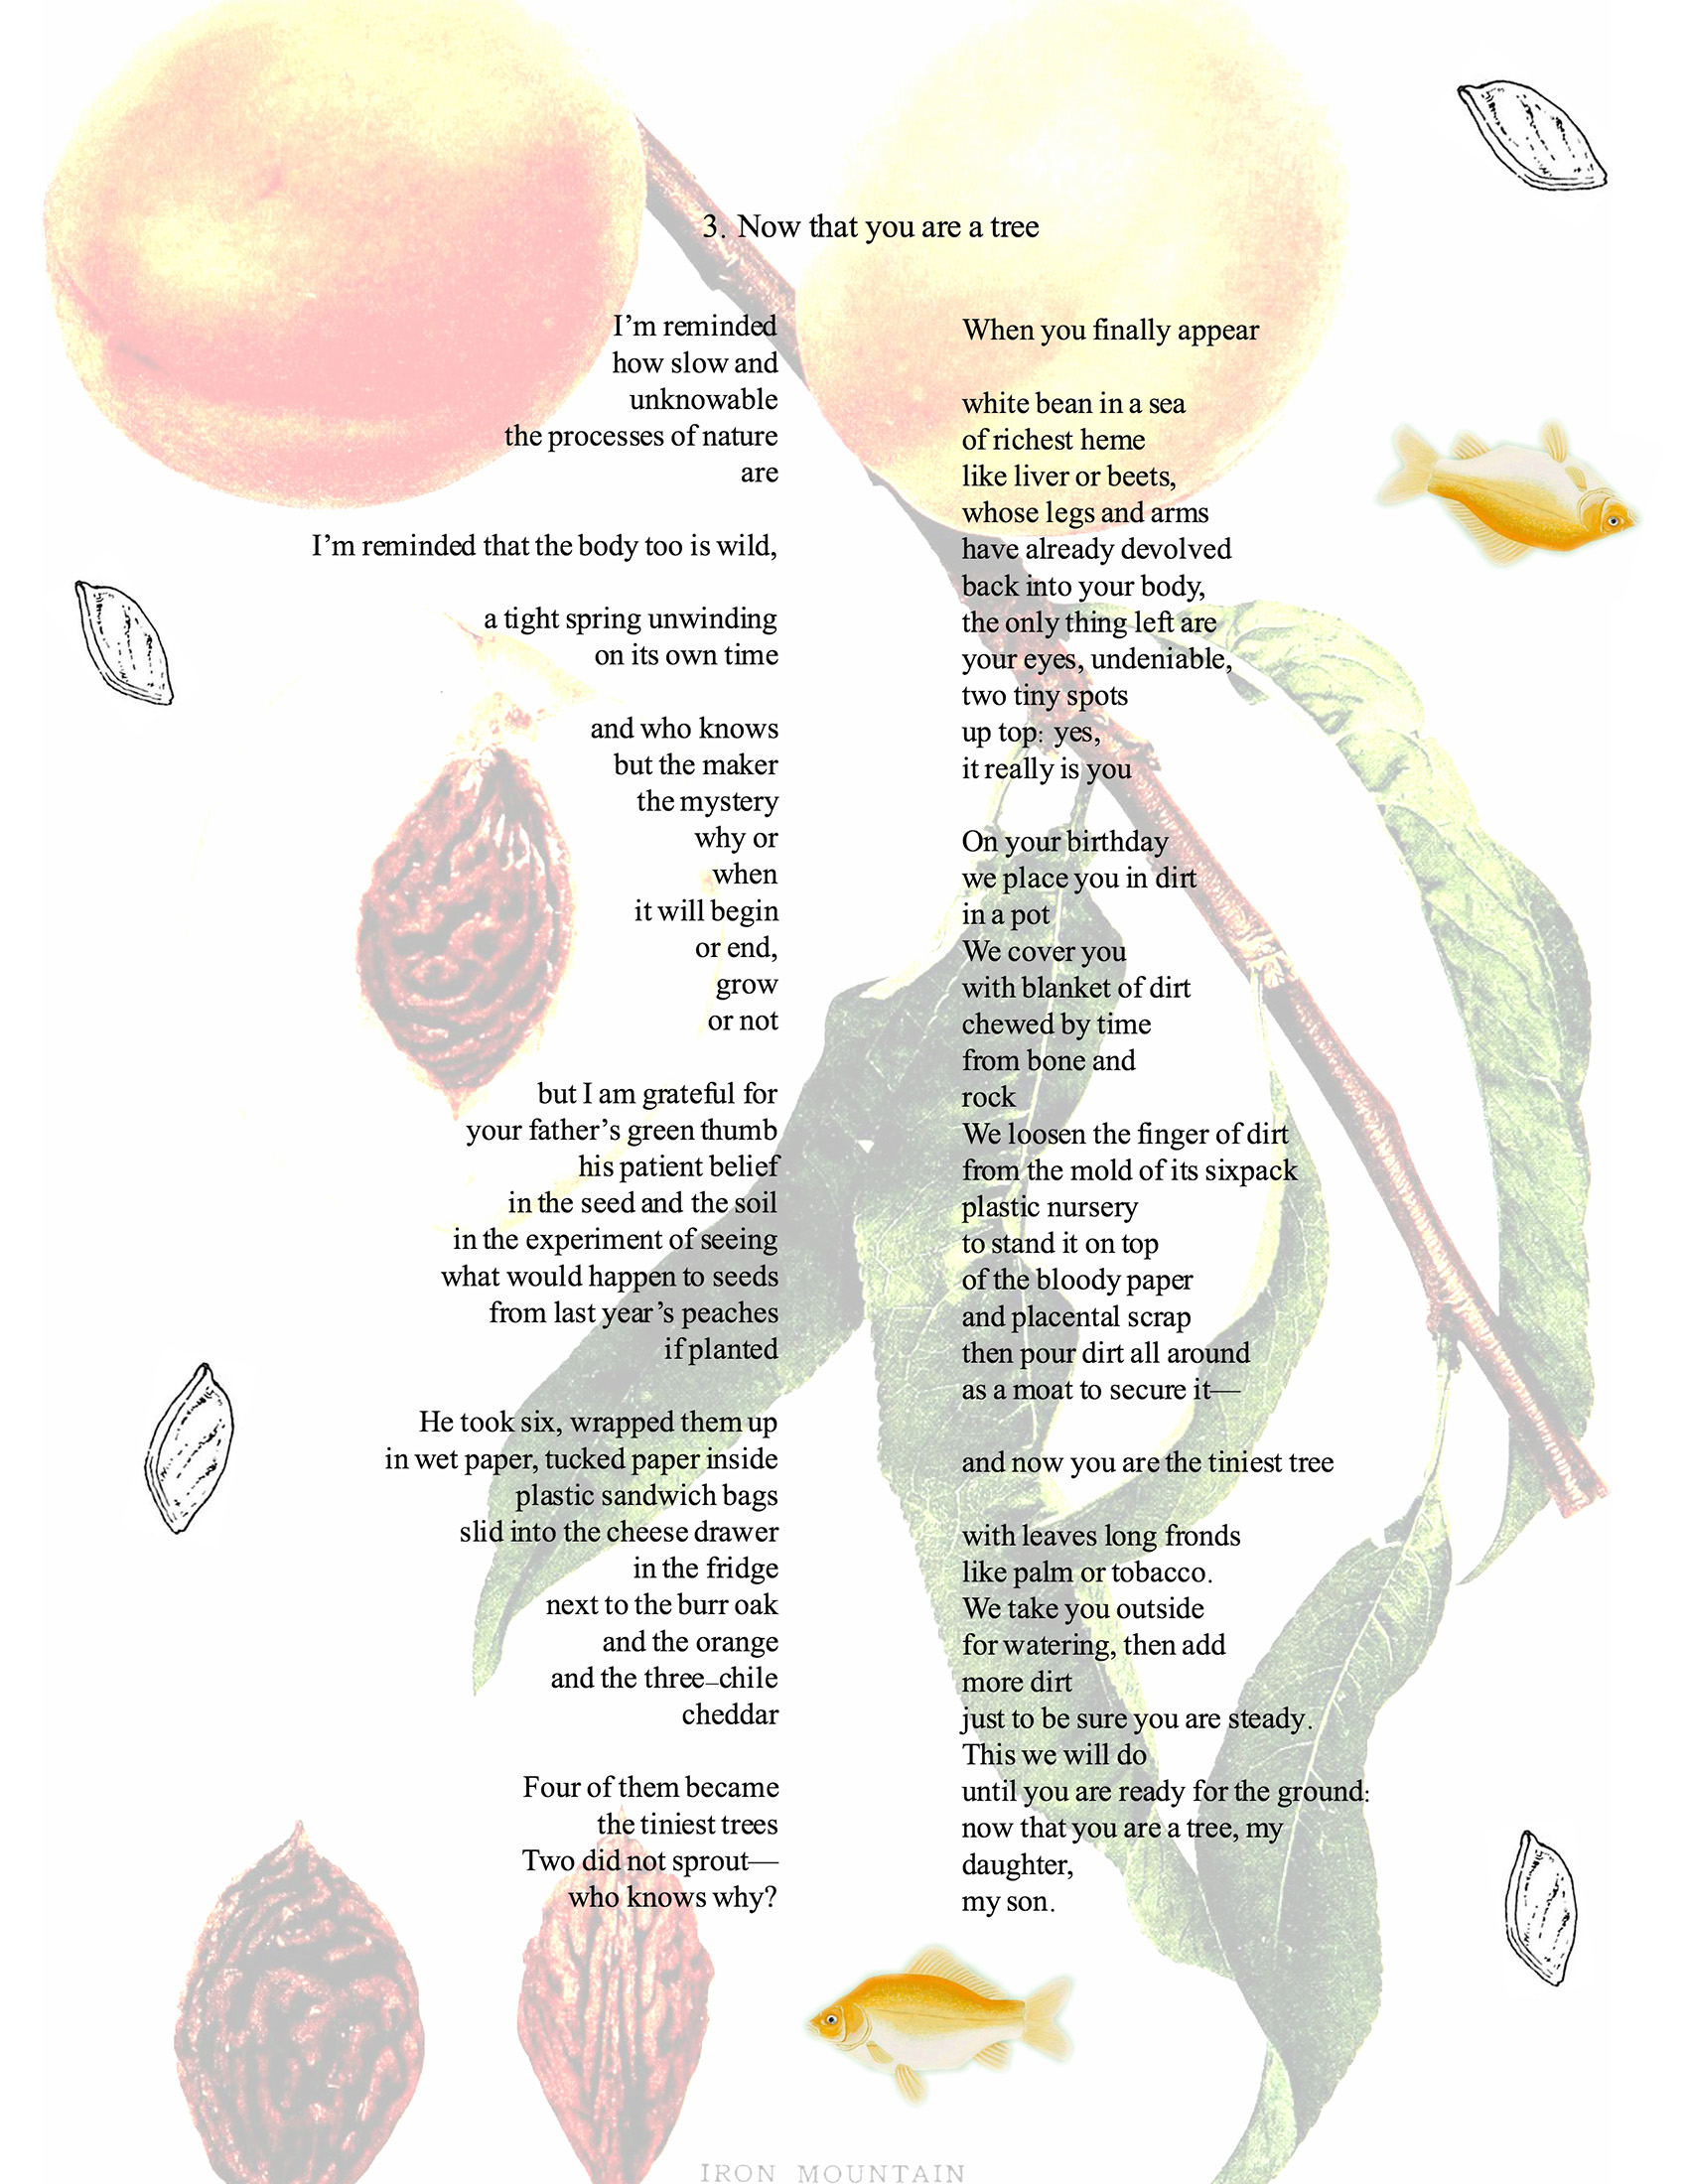 poem referencing peach trees and burial superimposed over botanical illustrations of peach tree leaves, fruit and pits